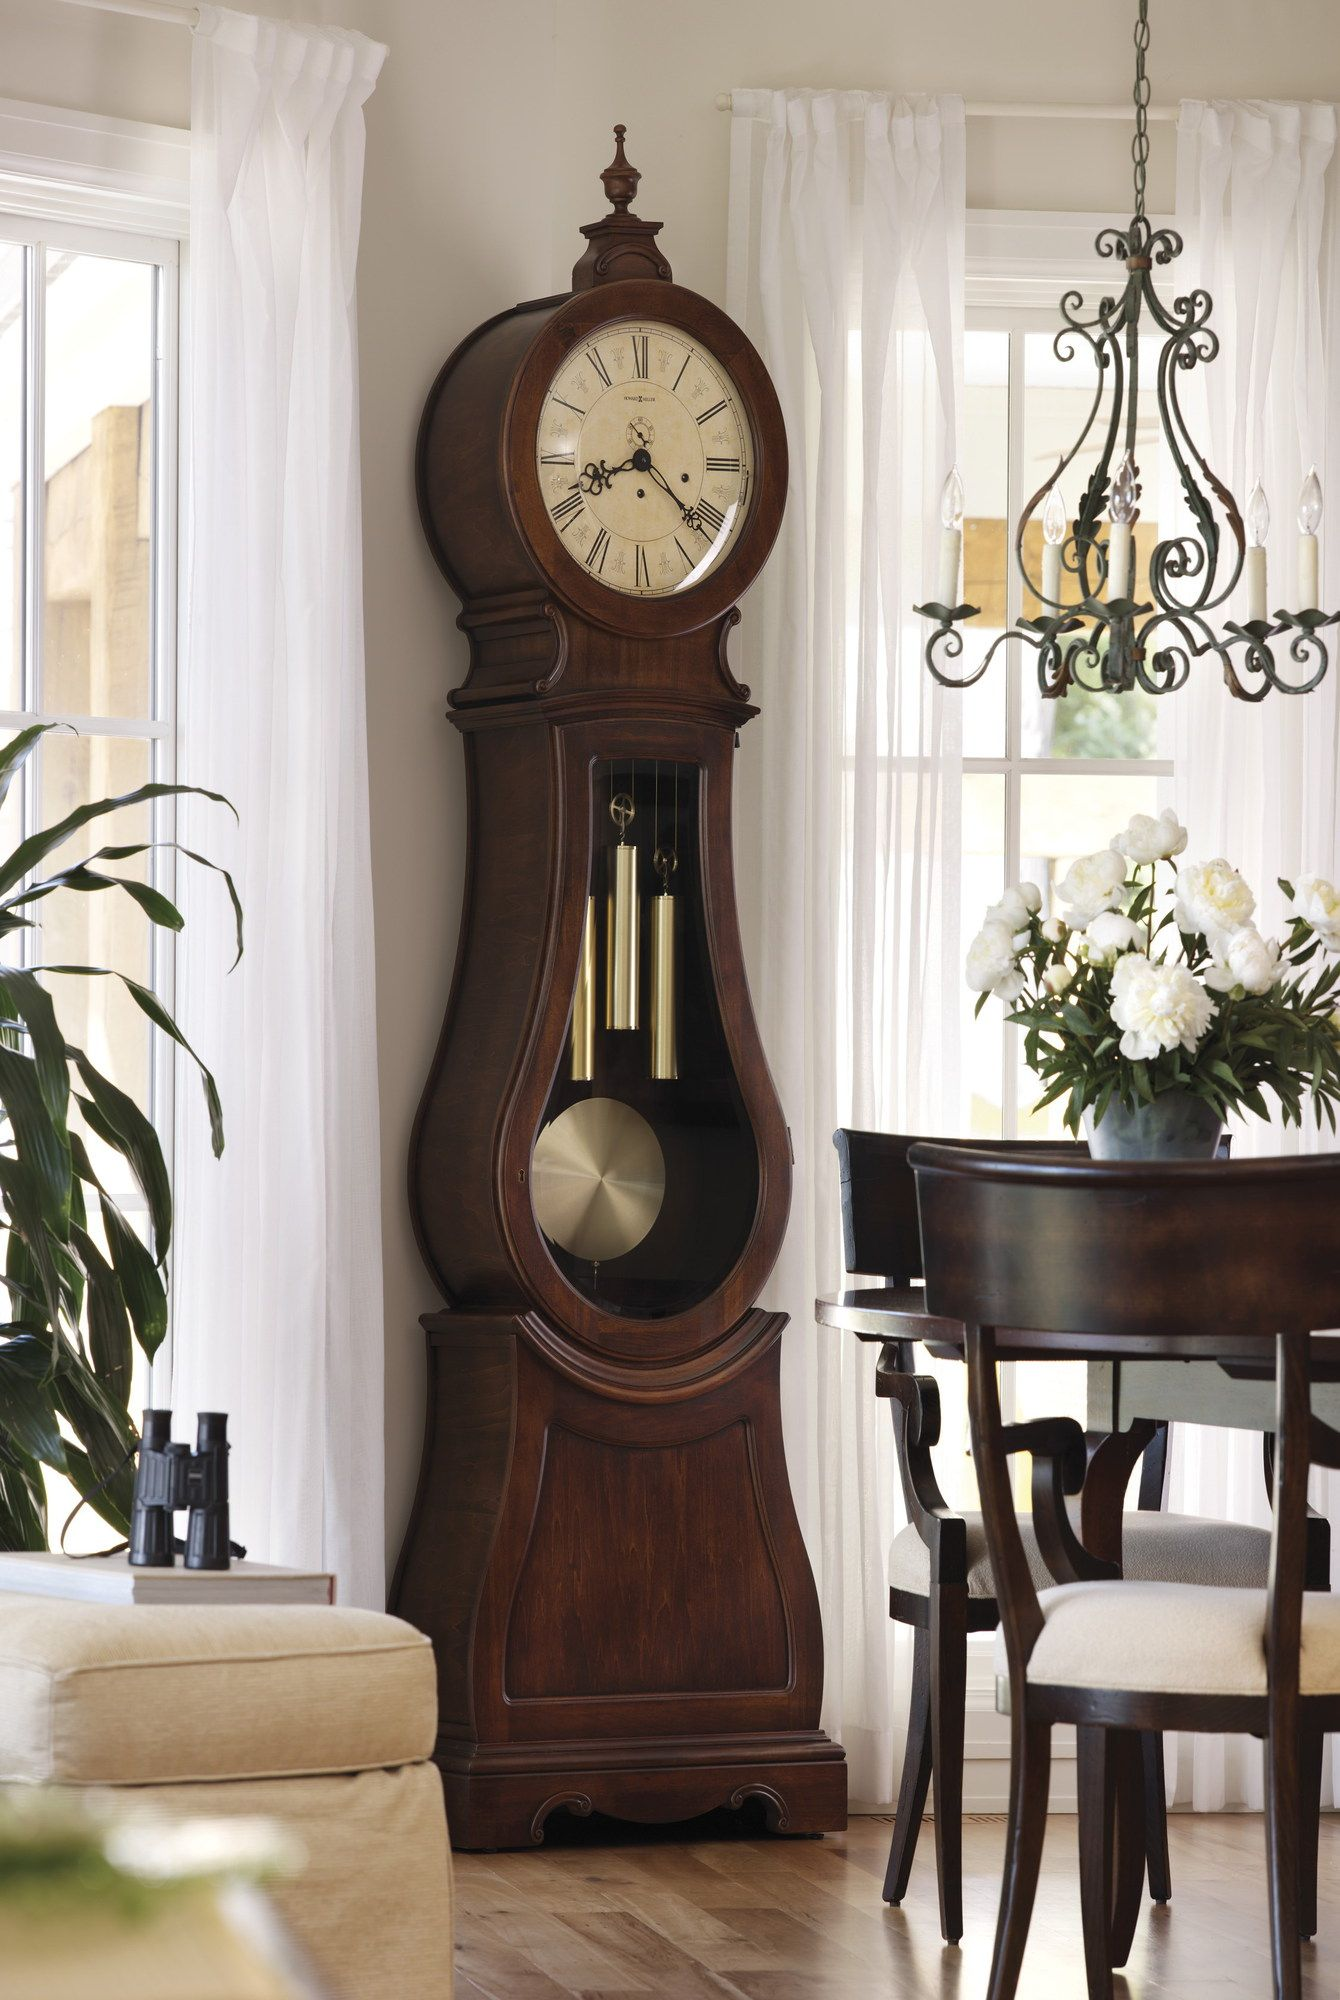 Love grandfather clocks dislike the color would prefer lighter love grandfather clocks dislike the color would prefer lighter and the spire amipublicfo Images